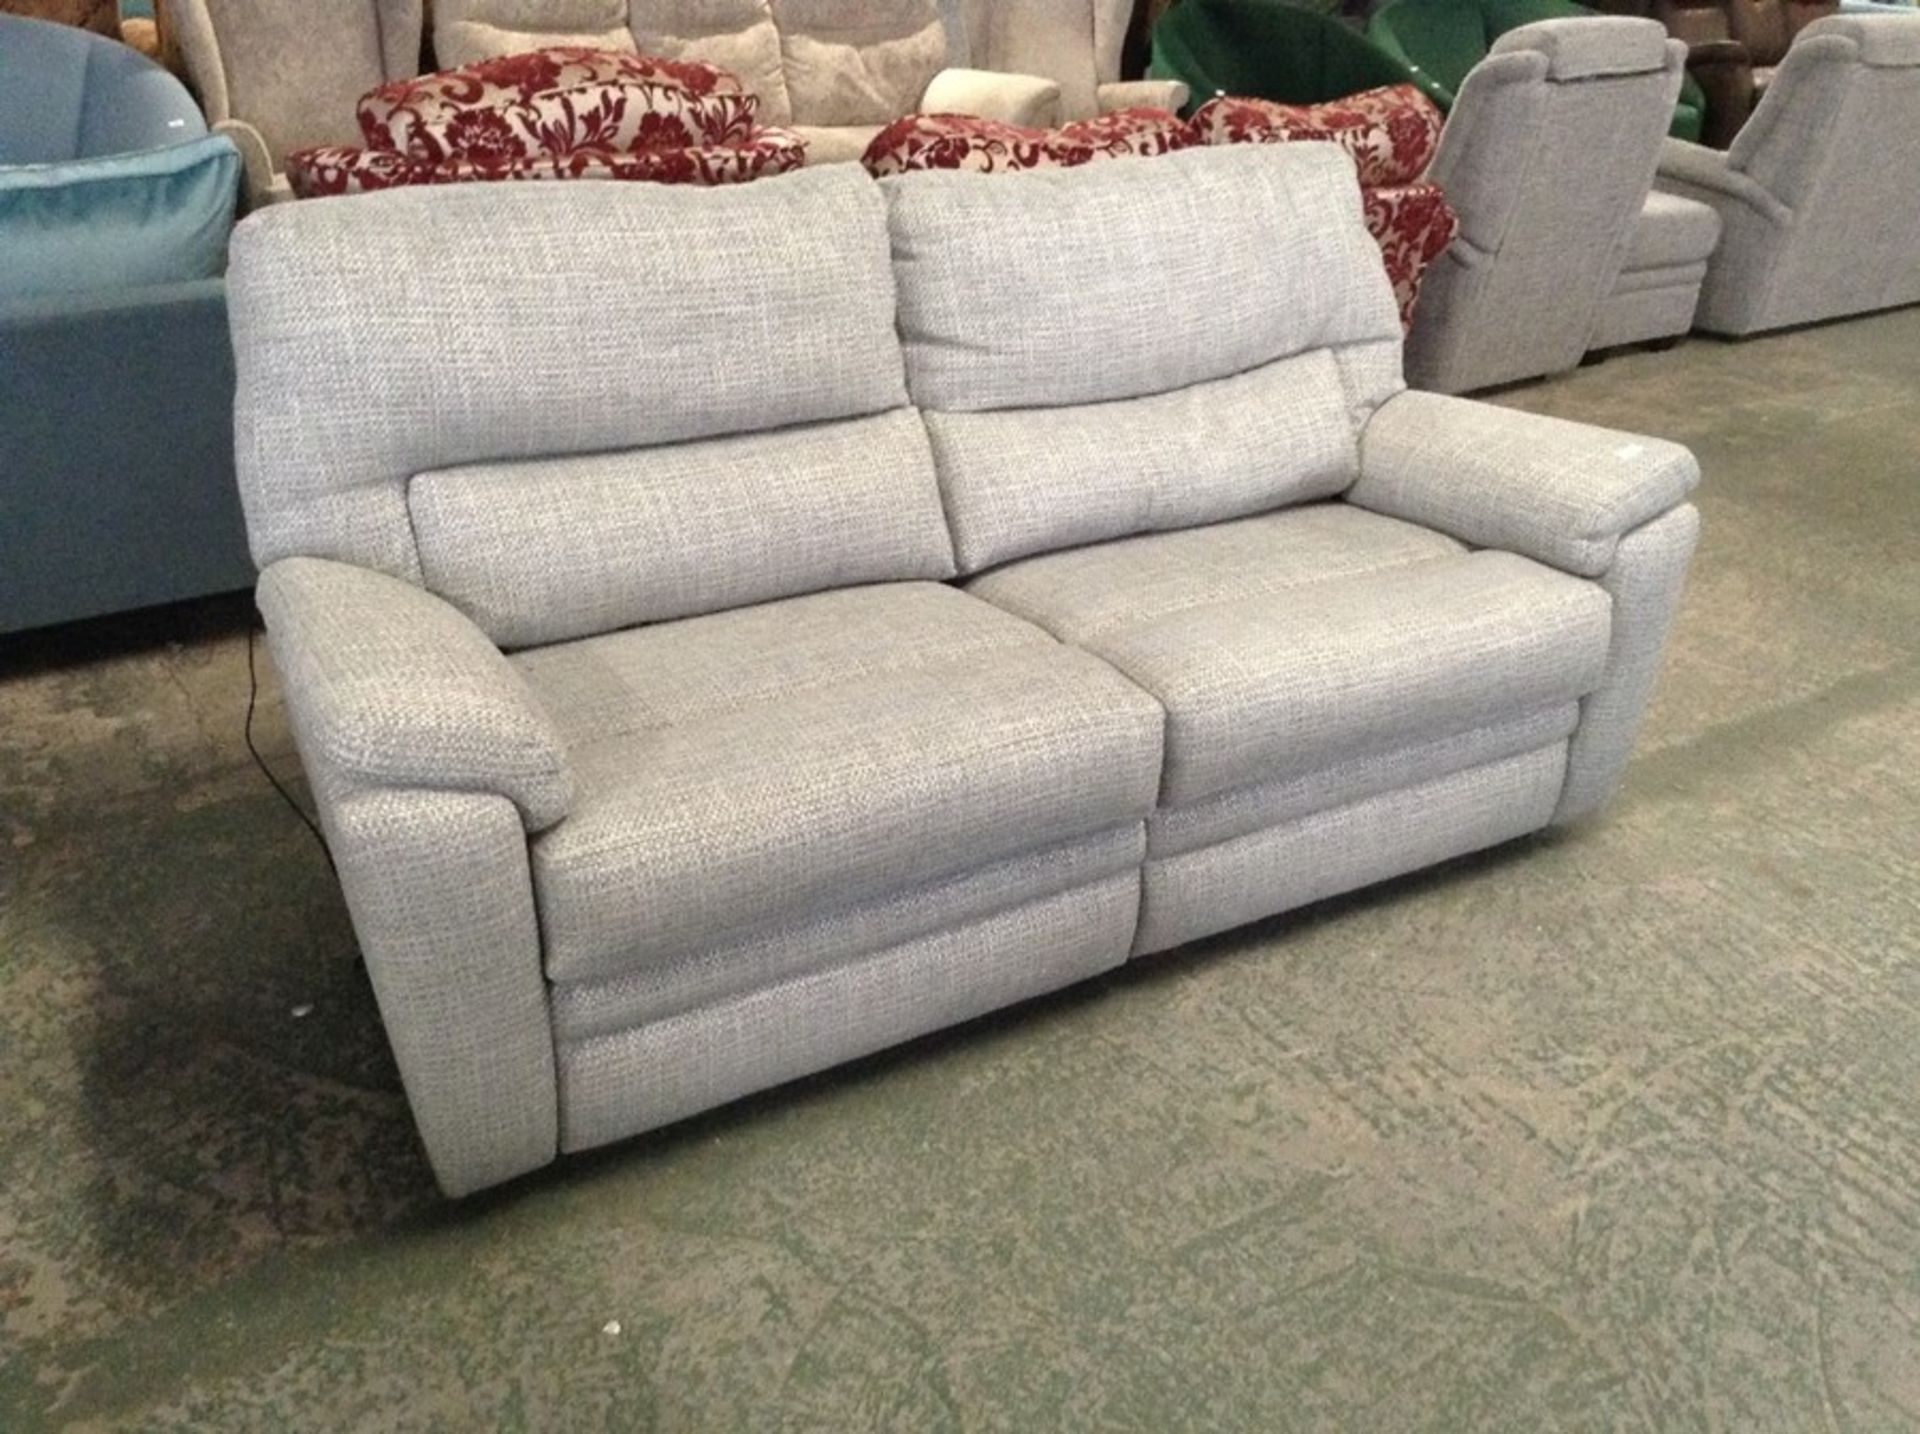 SILVER & GREEN ELECTRIC 3 SEATER TR002161 W00799825